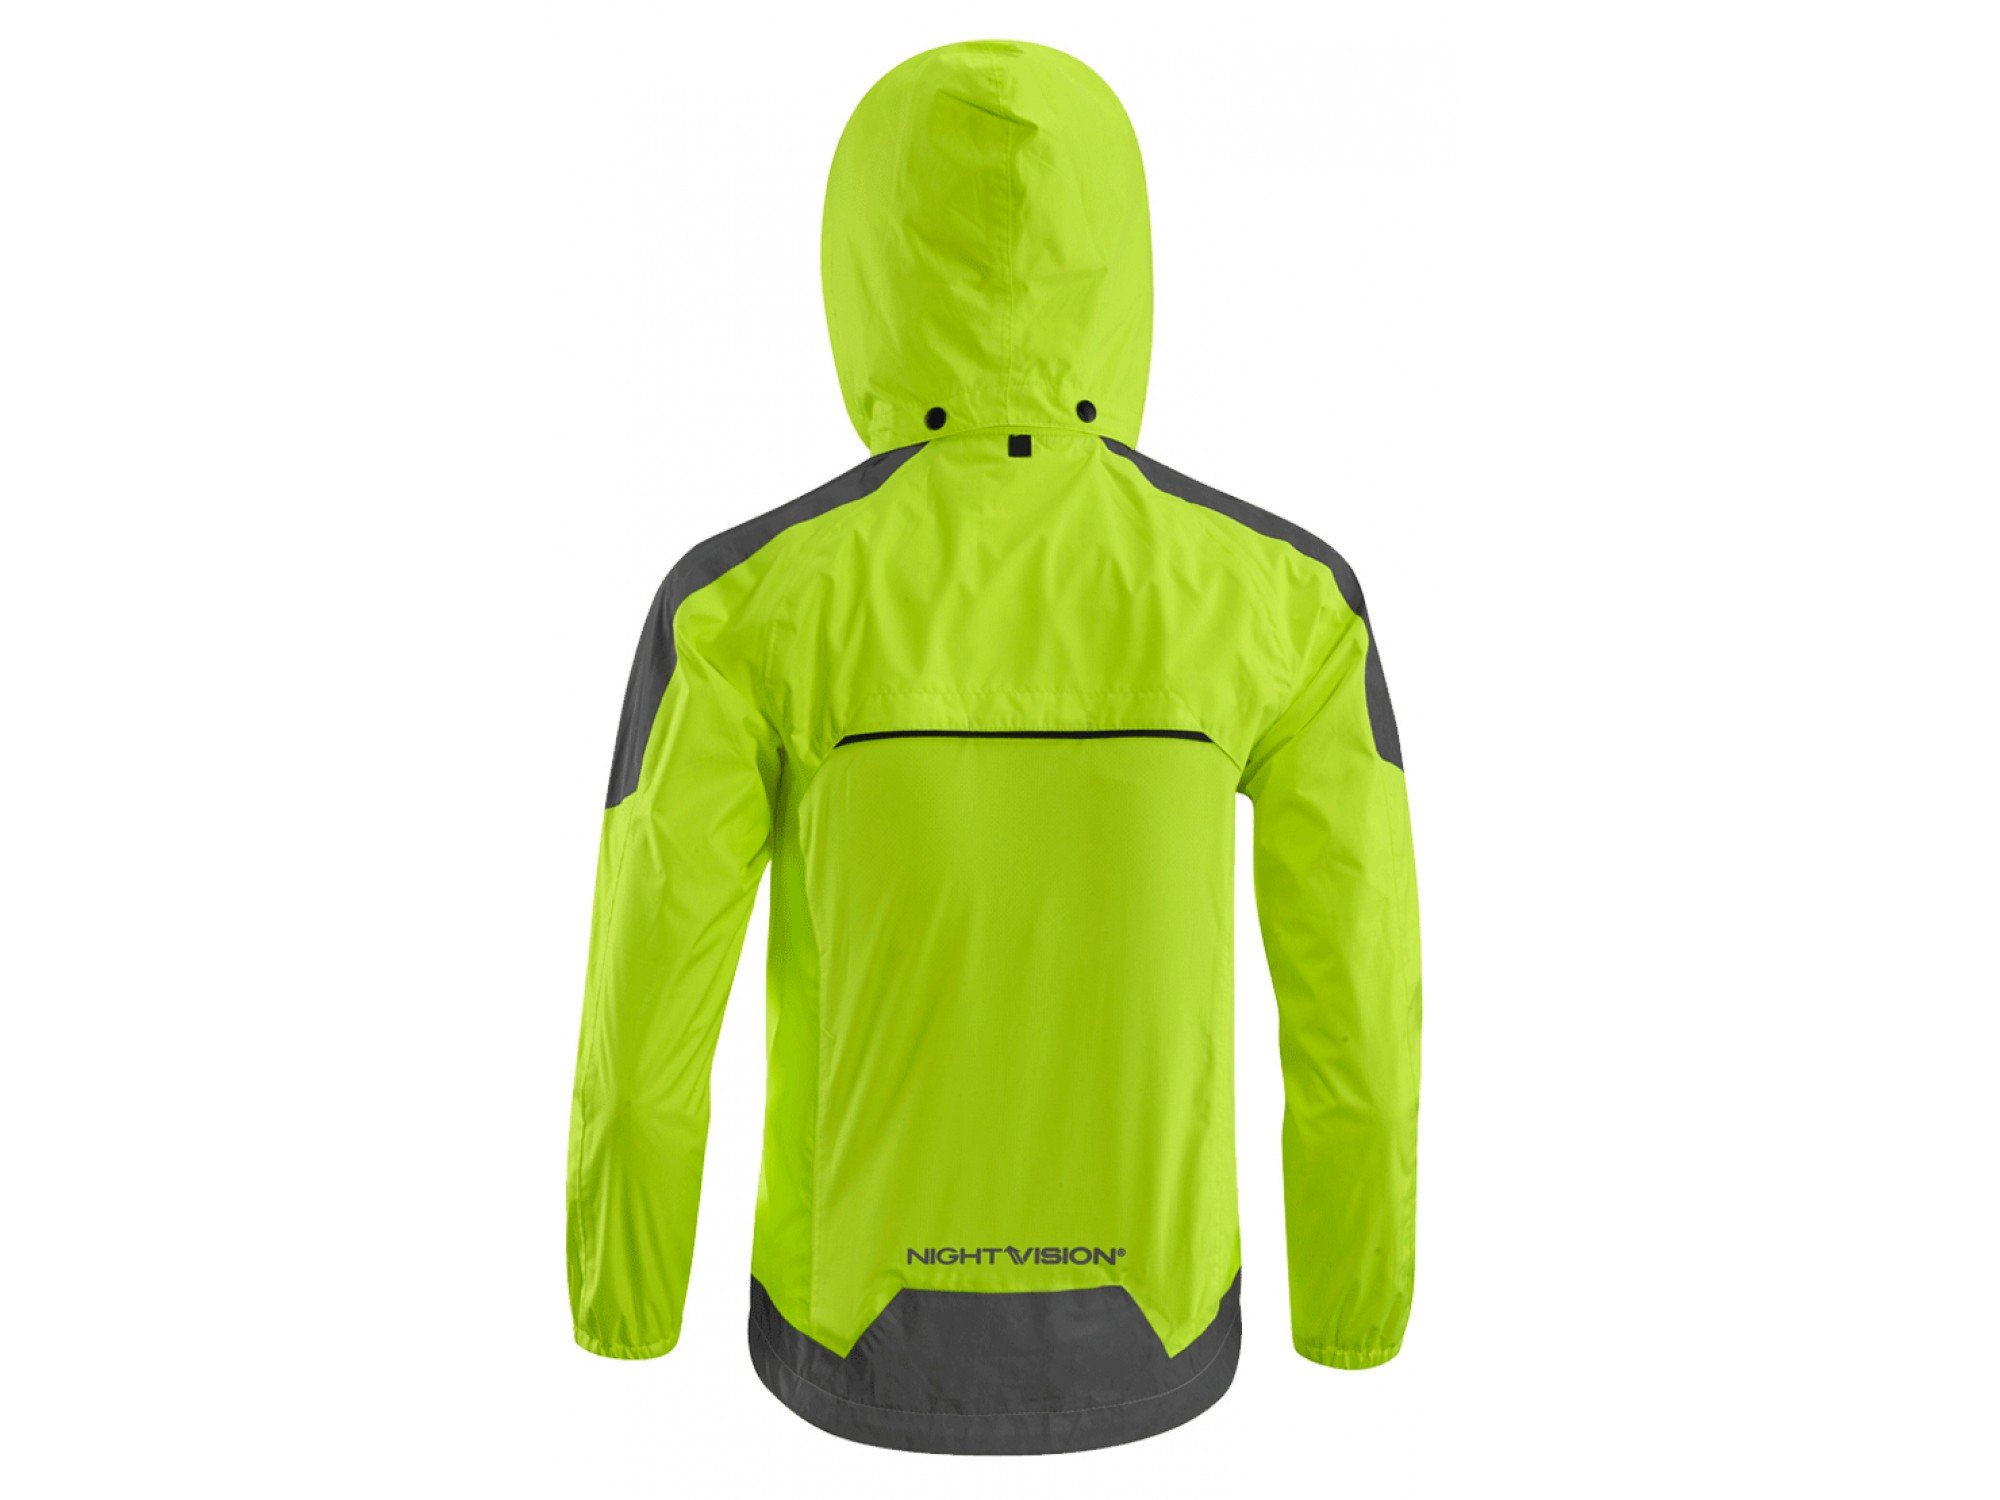 ff5e618e4 Altura Youth Nightvision 3 Waterproof Cycling Jacket | Edinburgh Bike Co-op